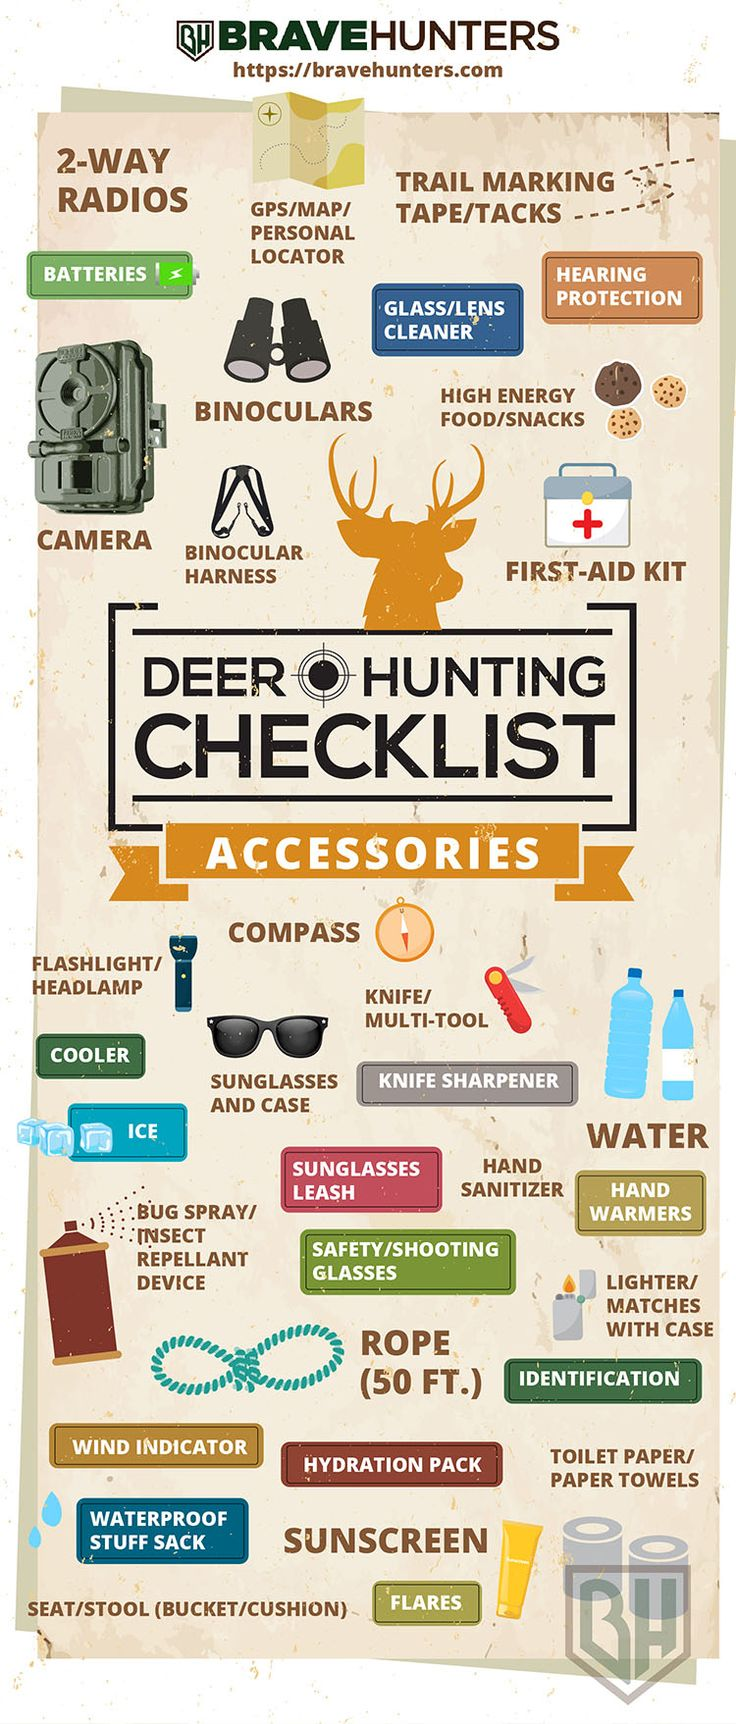 Deer Hunting Checklist - Accesories - Infographic